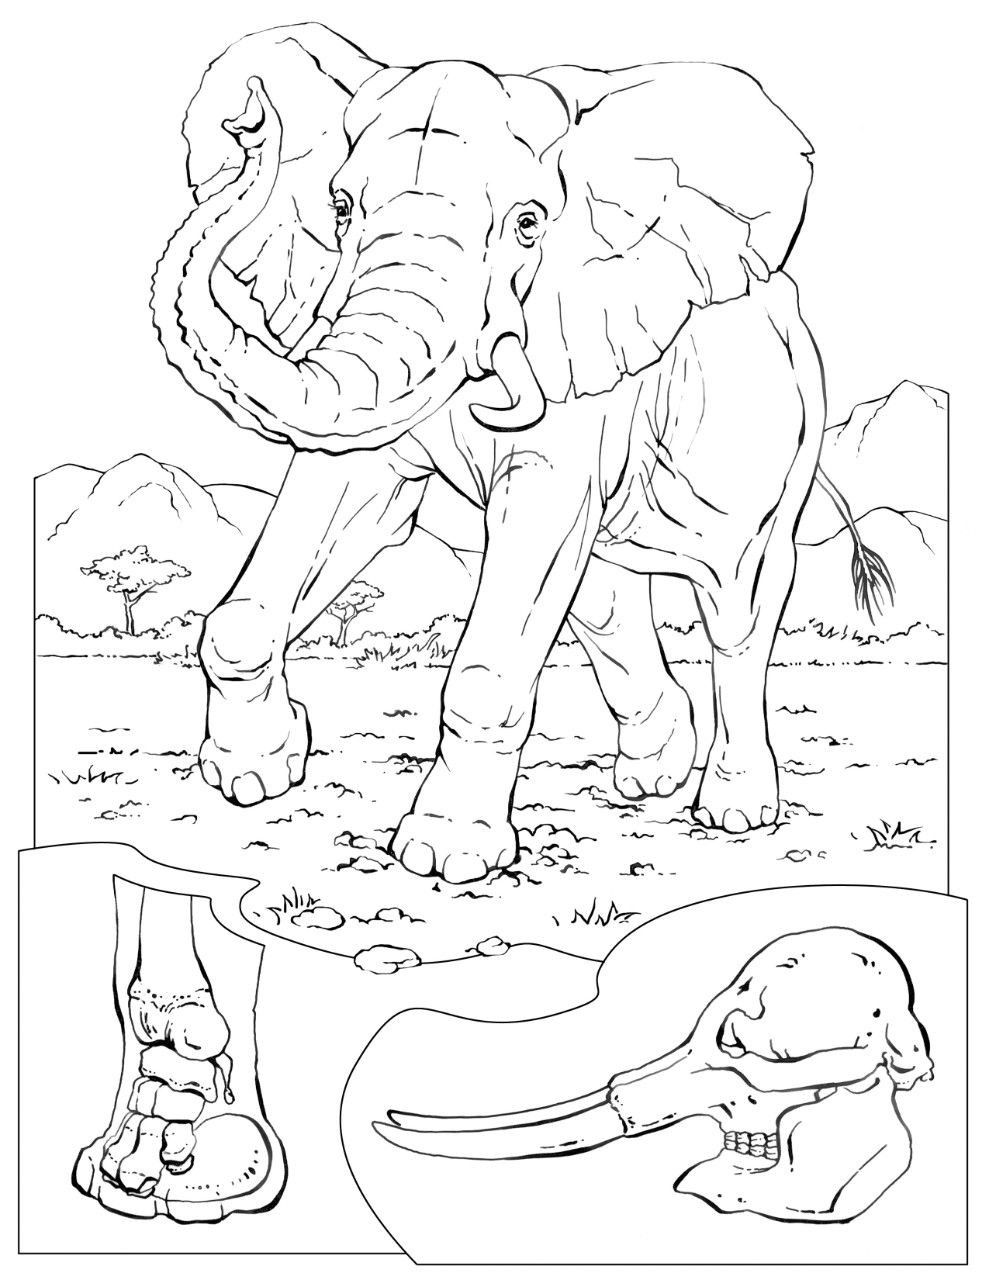 Pin By Geena Loeskow On Wedding Elephant Coloring Page Animal